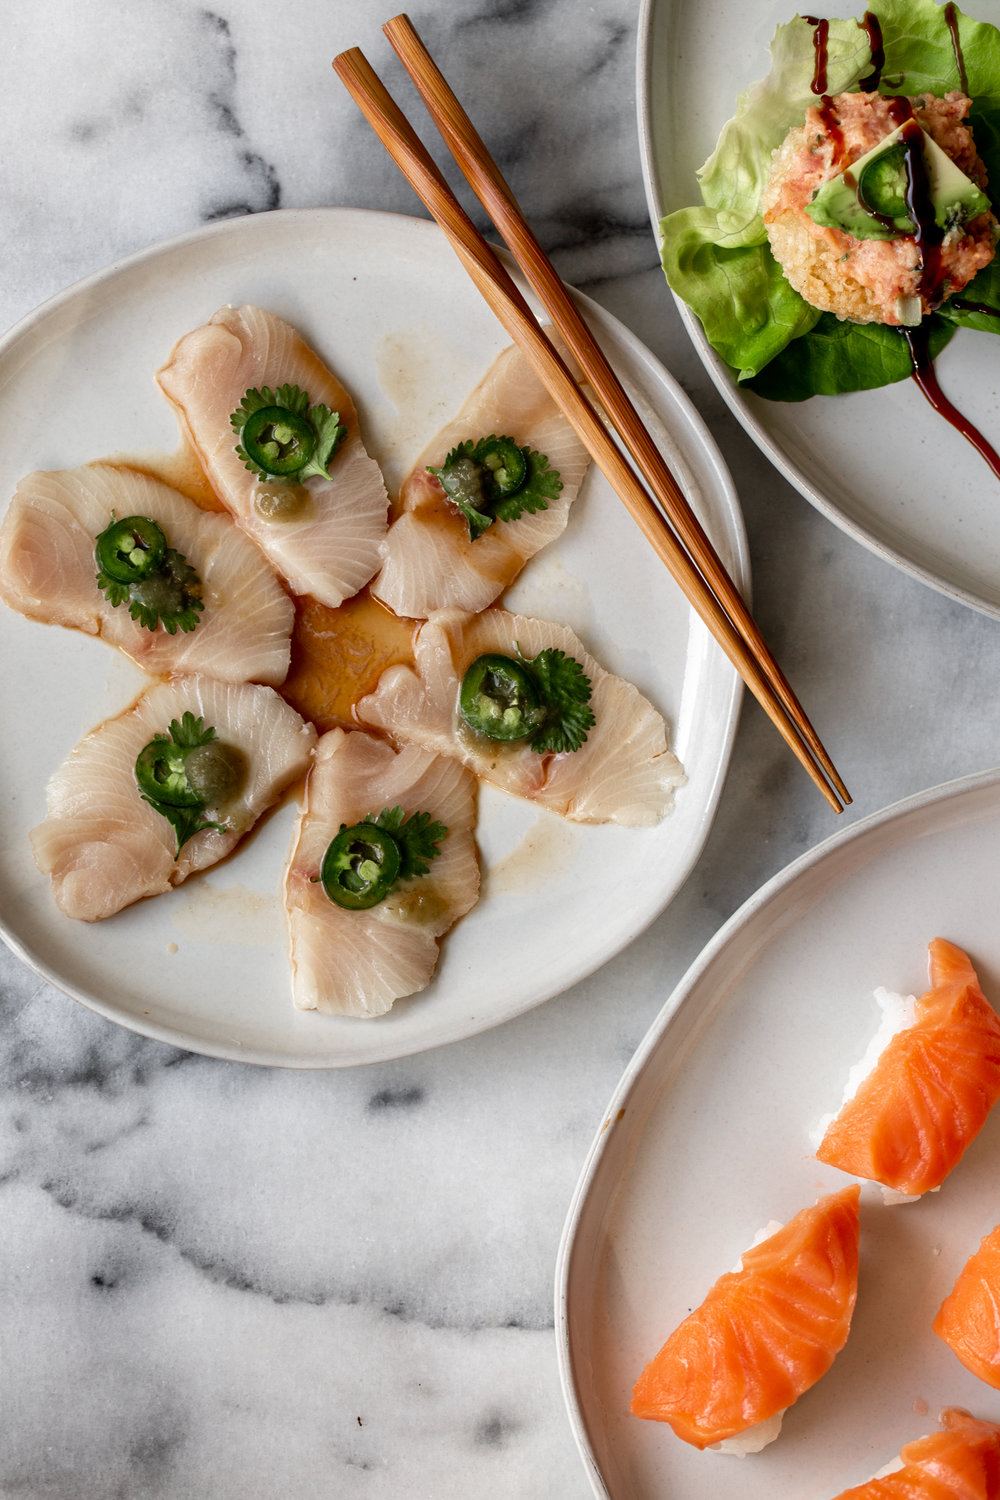 I'm sharing some of my favorite recipes inspired by the famed restaurant, Nobu to celebrate Valentine's Day with an at home sushi experience.